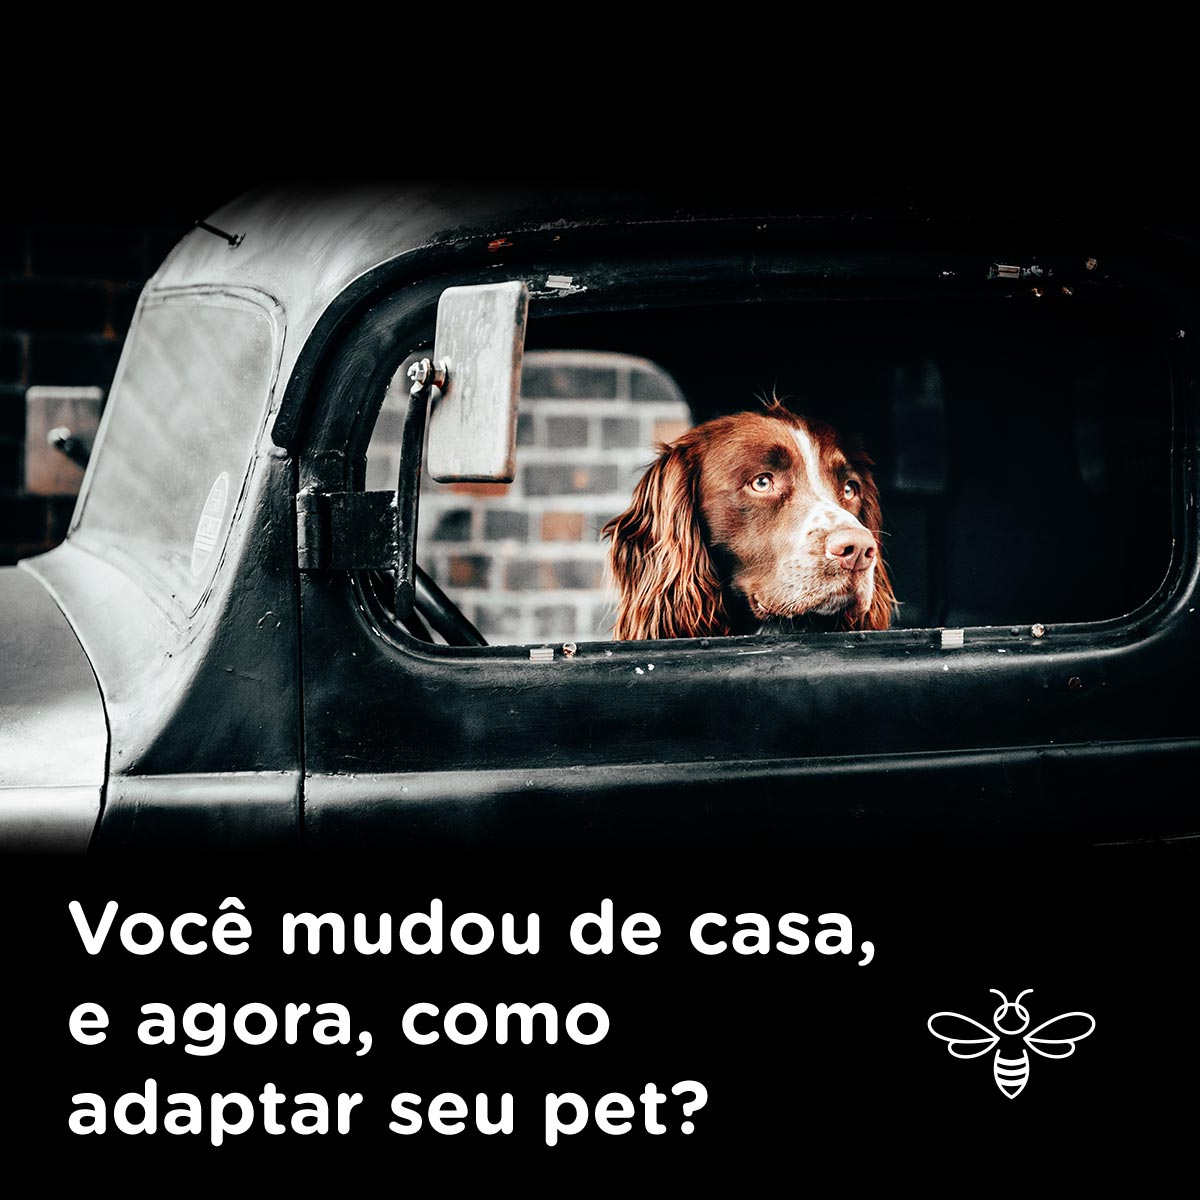 como adaptar seu pet